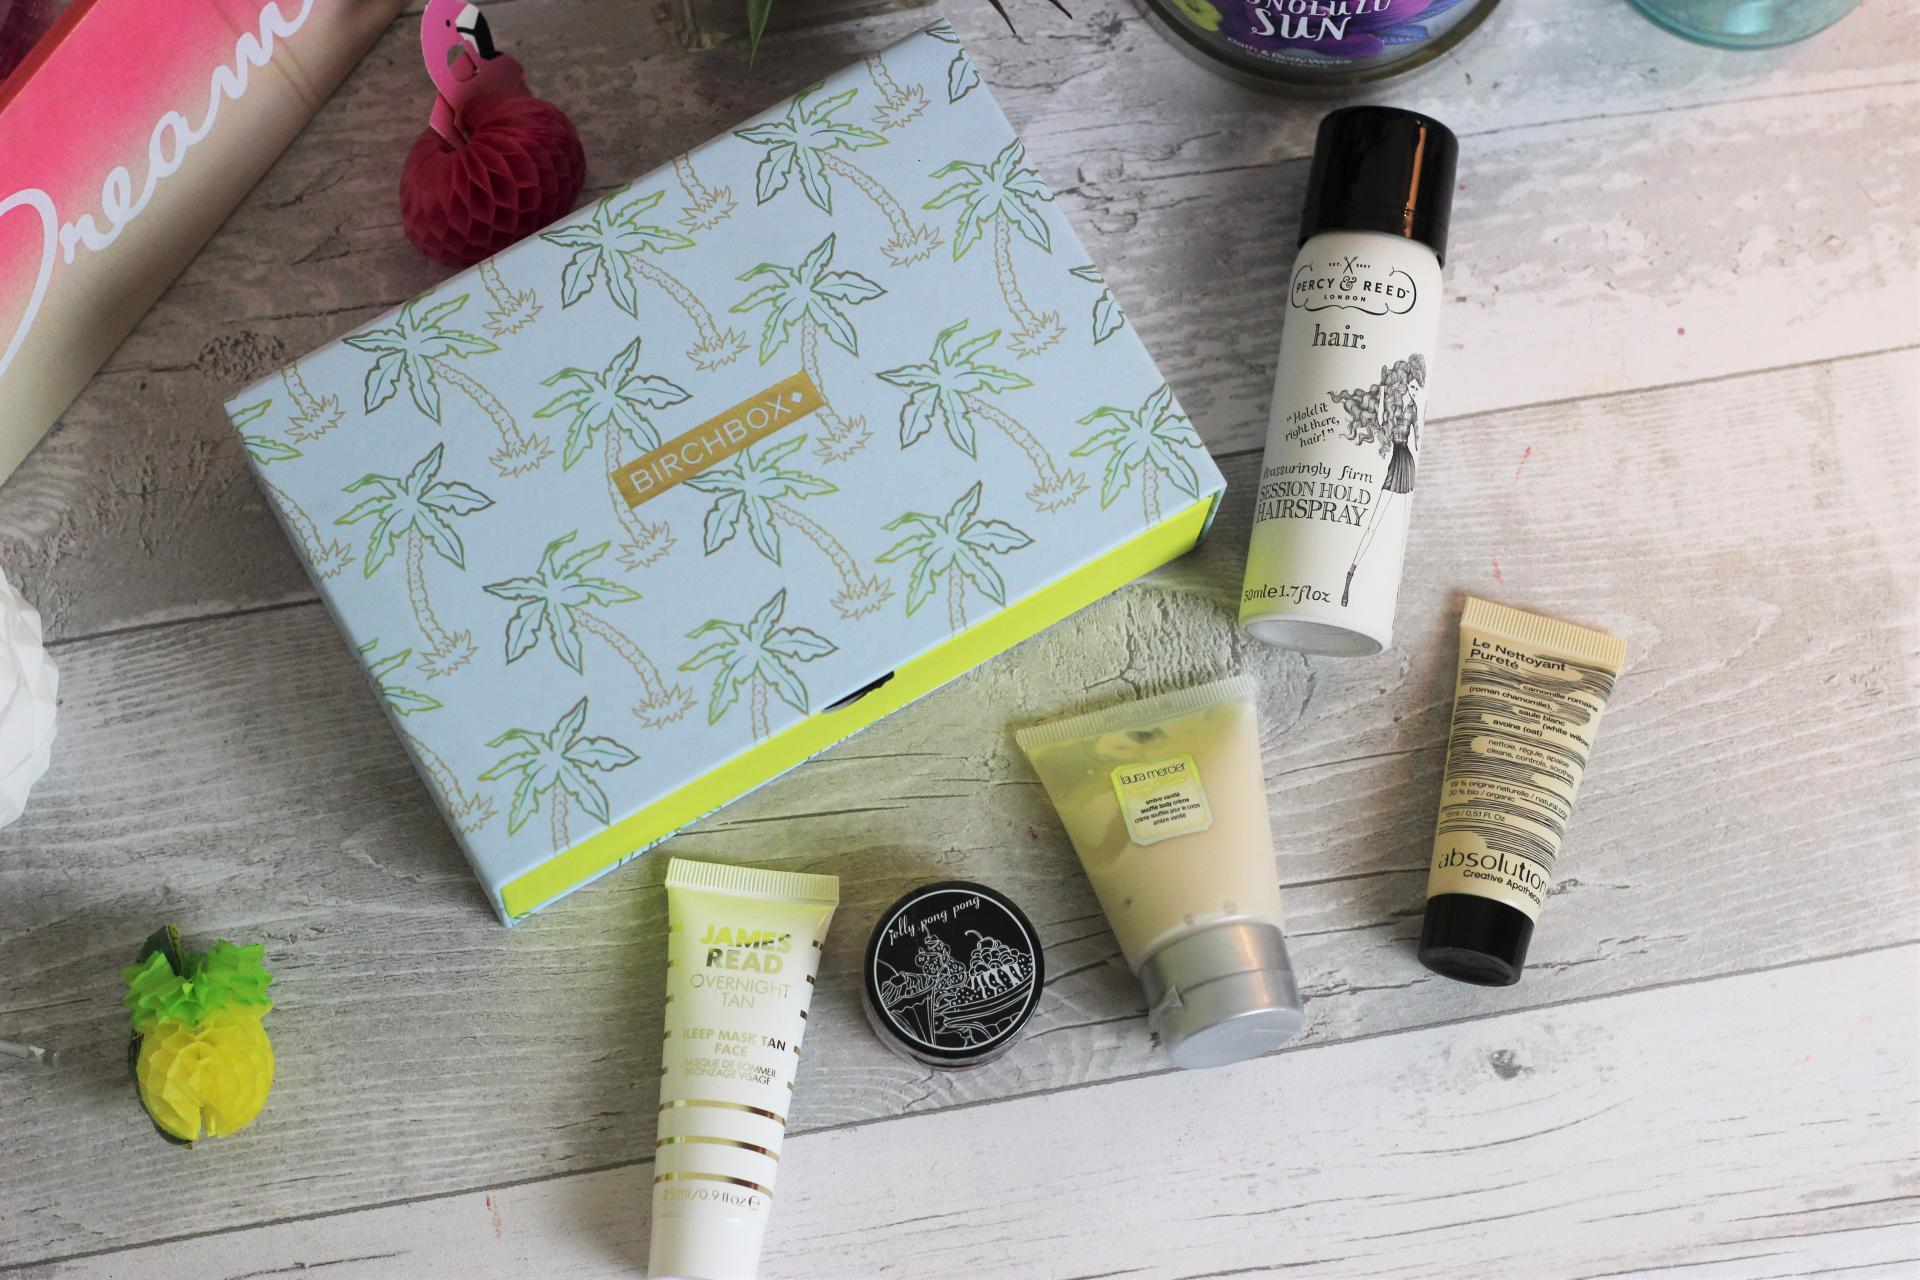 The June 2016 Birchbox